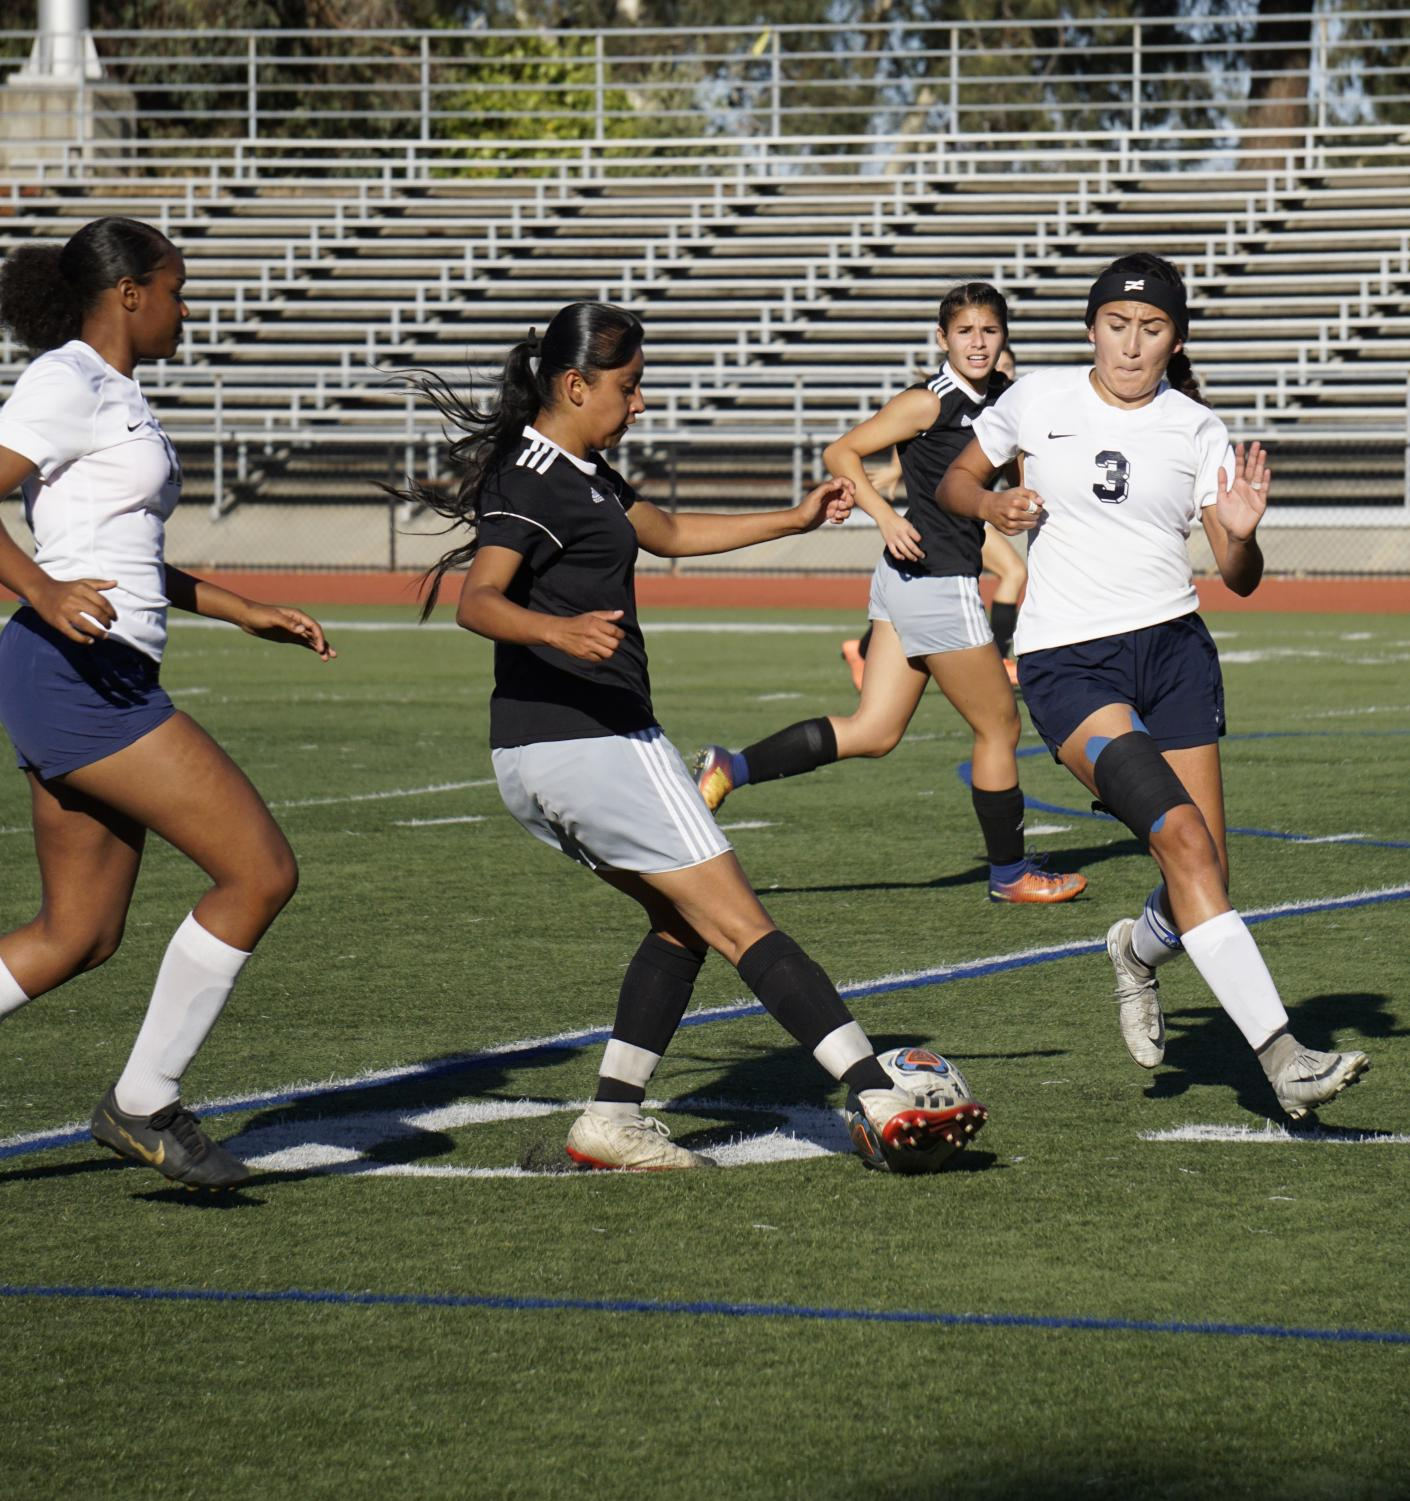 Litzy Ramirez, No. 10, dribbles around two defenders and makes a pass to Anissa Gomez, No. 12.